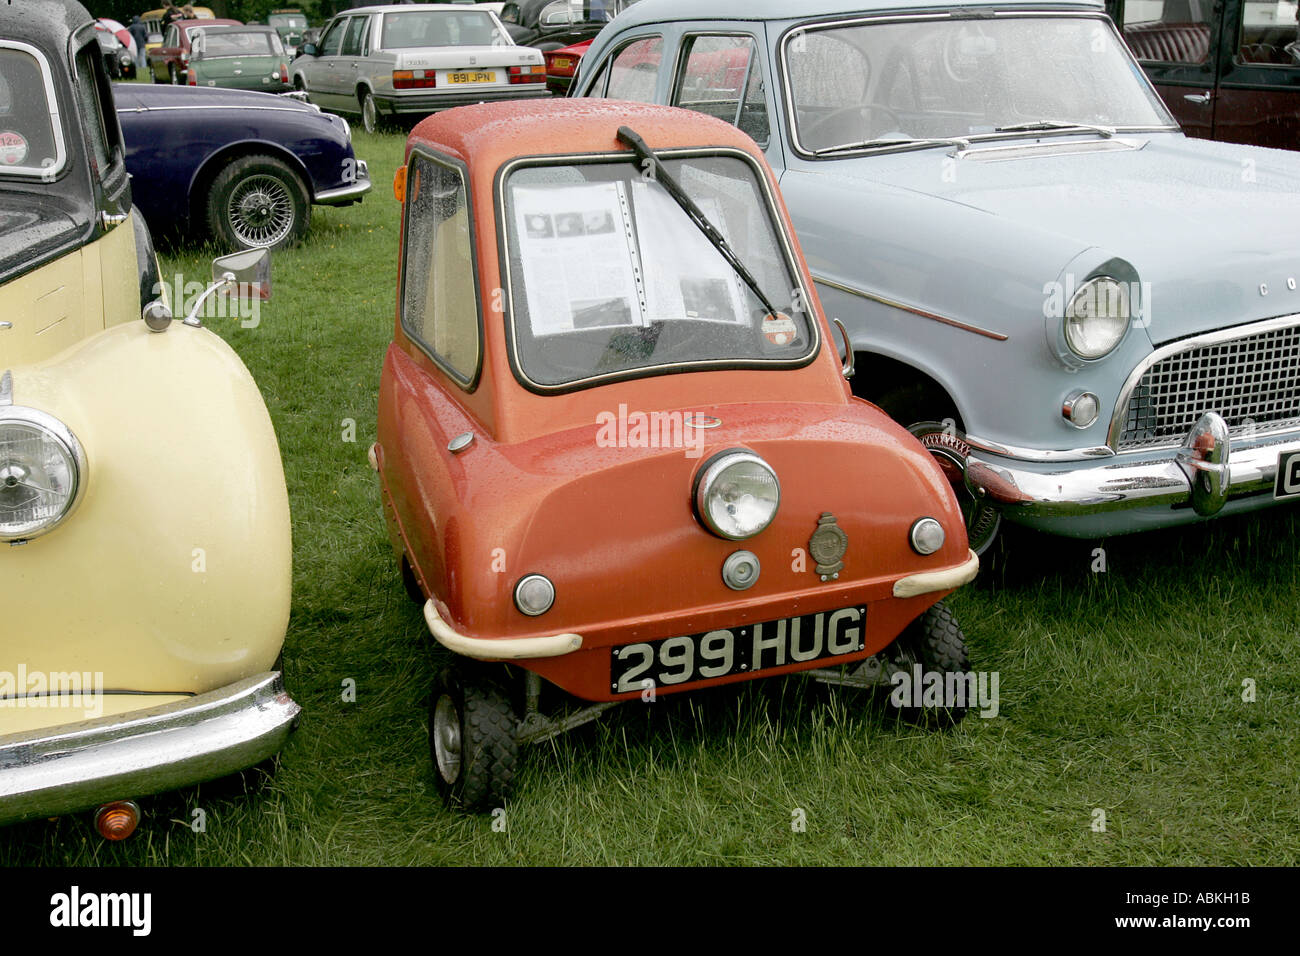 old little tiny car classic history vehicle vintage antipodes symbol ...